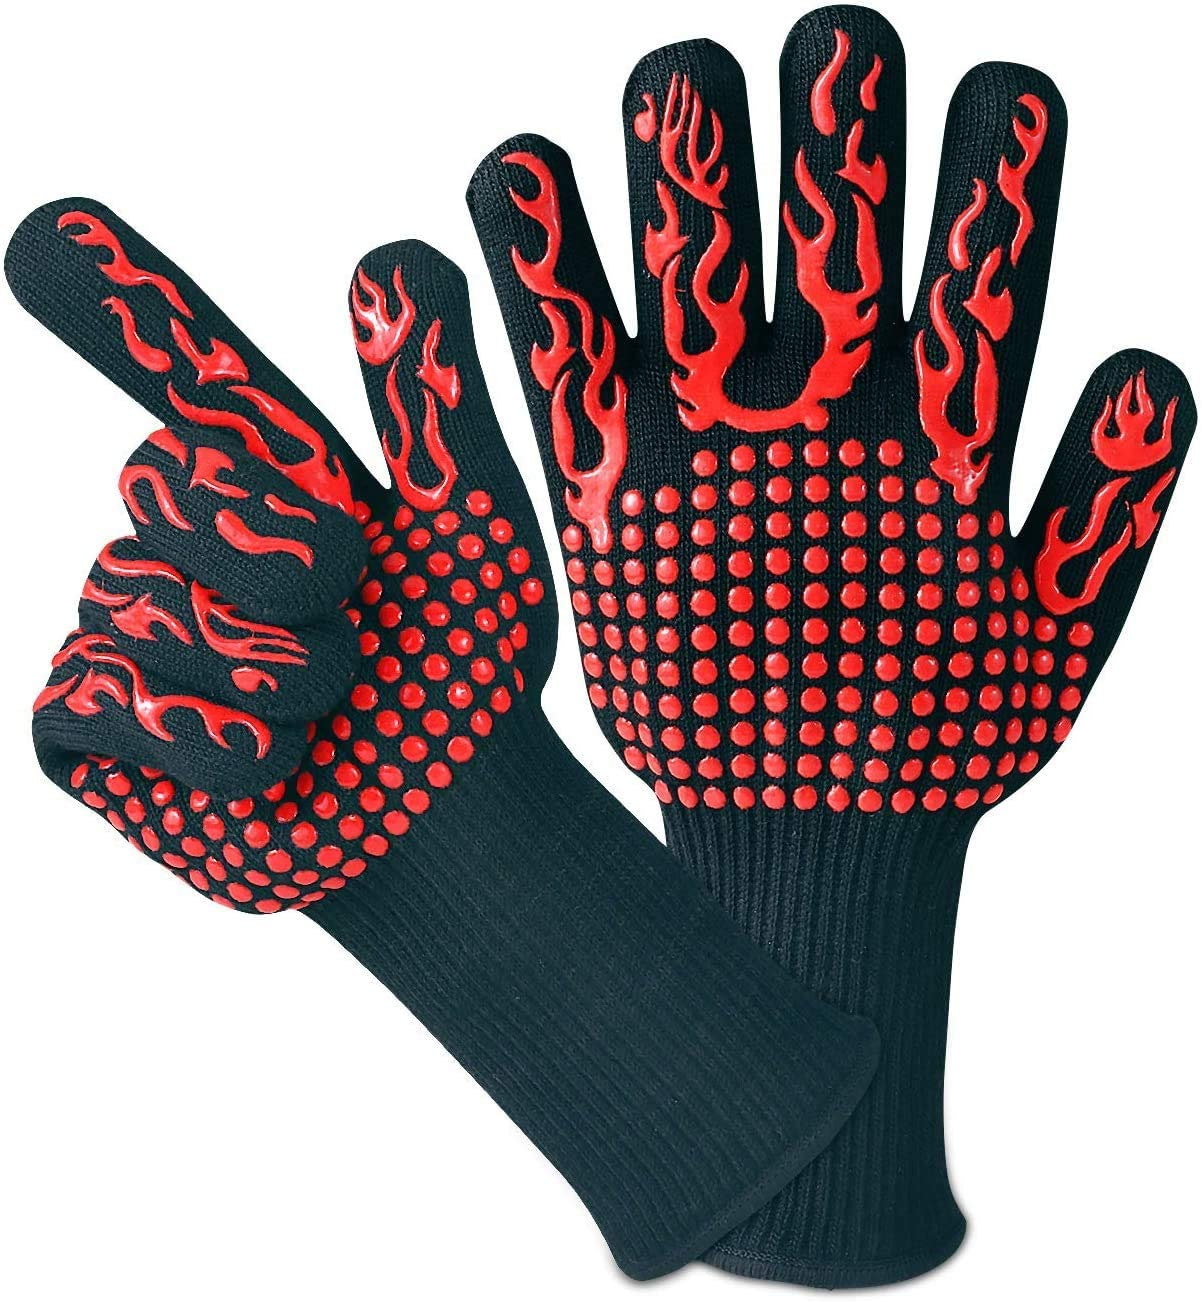 DAWNDEW Oven Gloves BBQ Gloves-932?High Temperature Resistant EN407 Certification-Silicone Non-Slip Design, Thick Inner Layer, Anti-Scratch